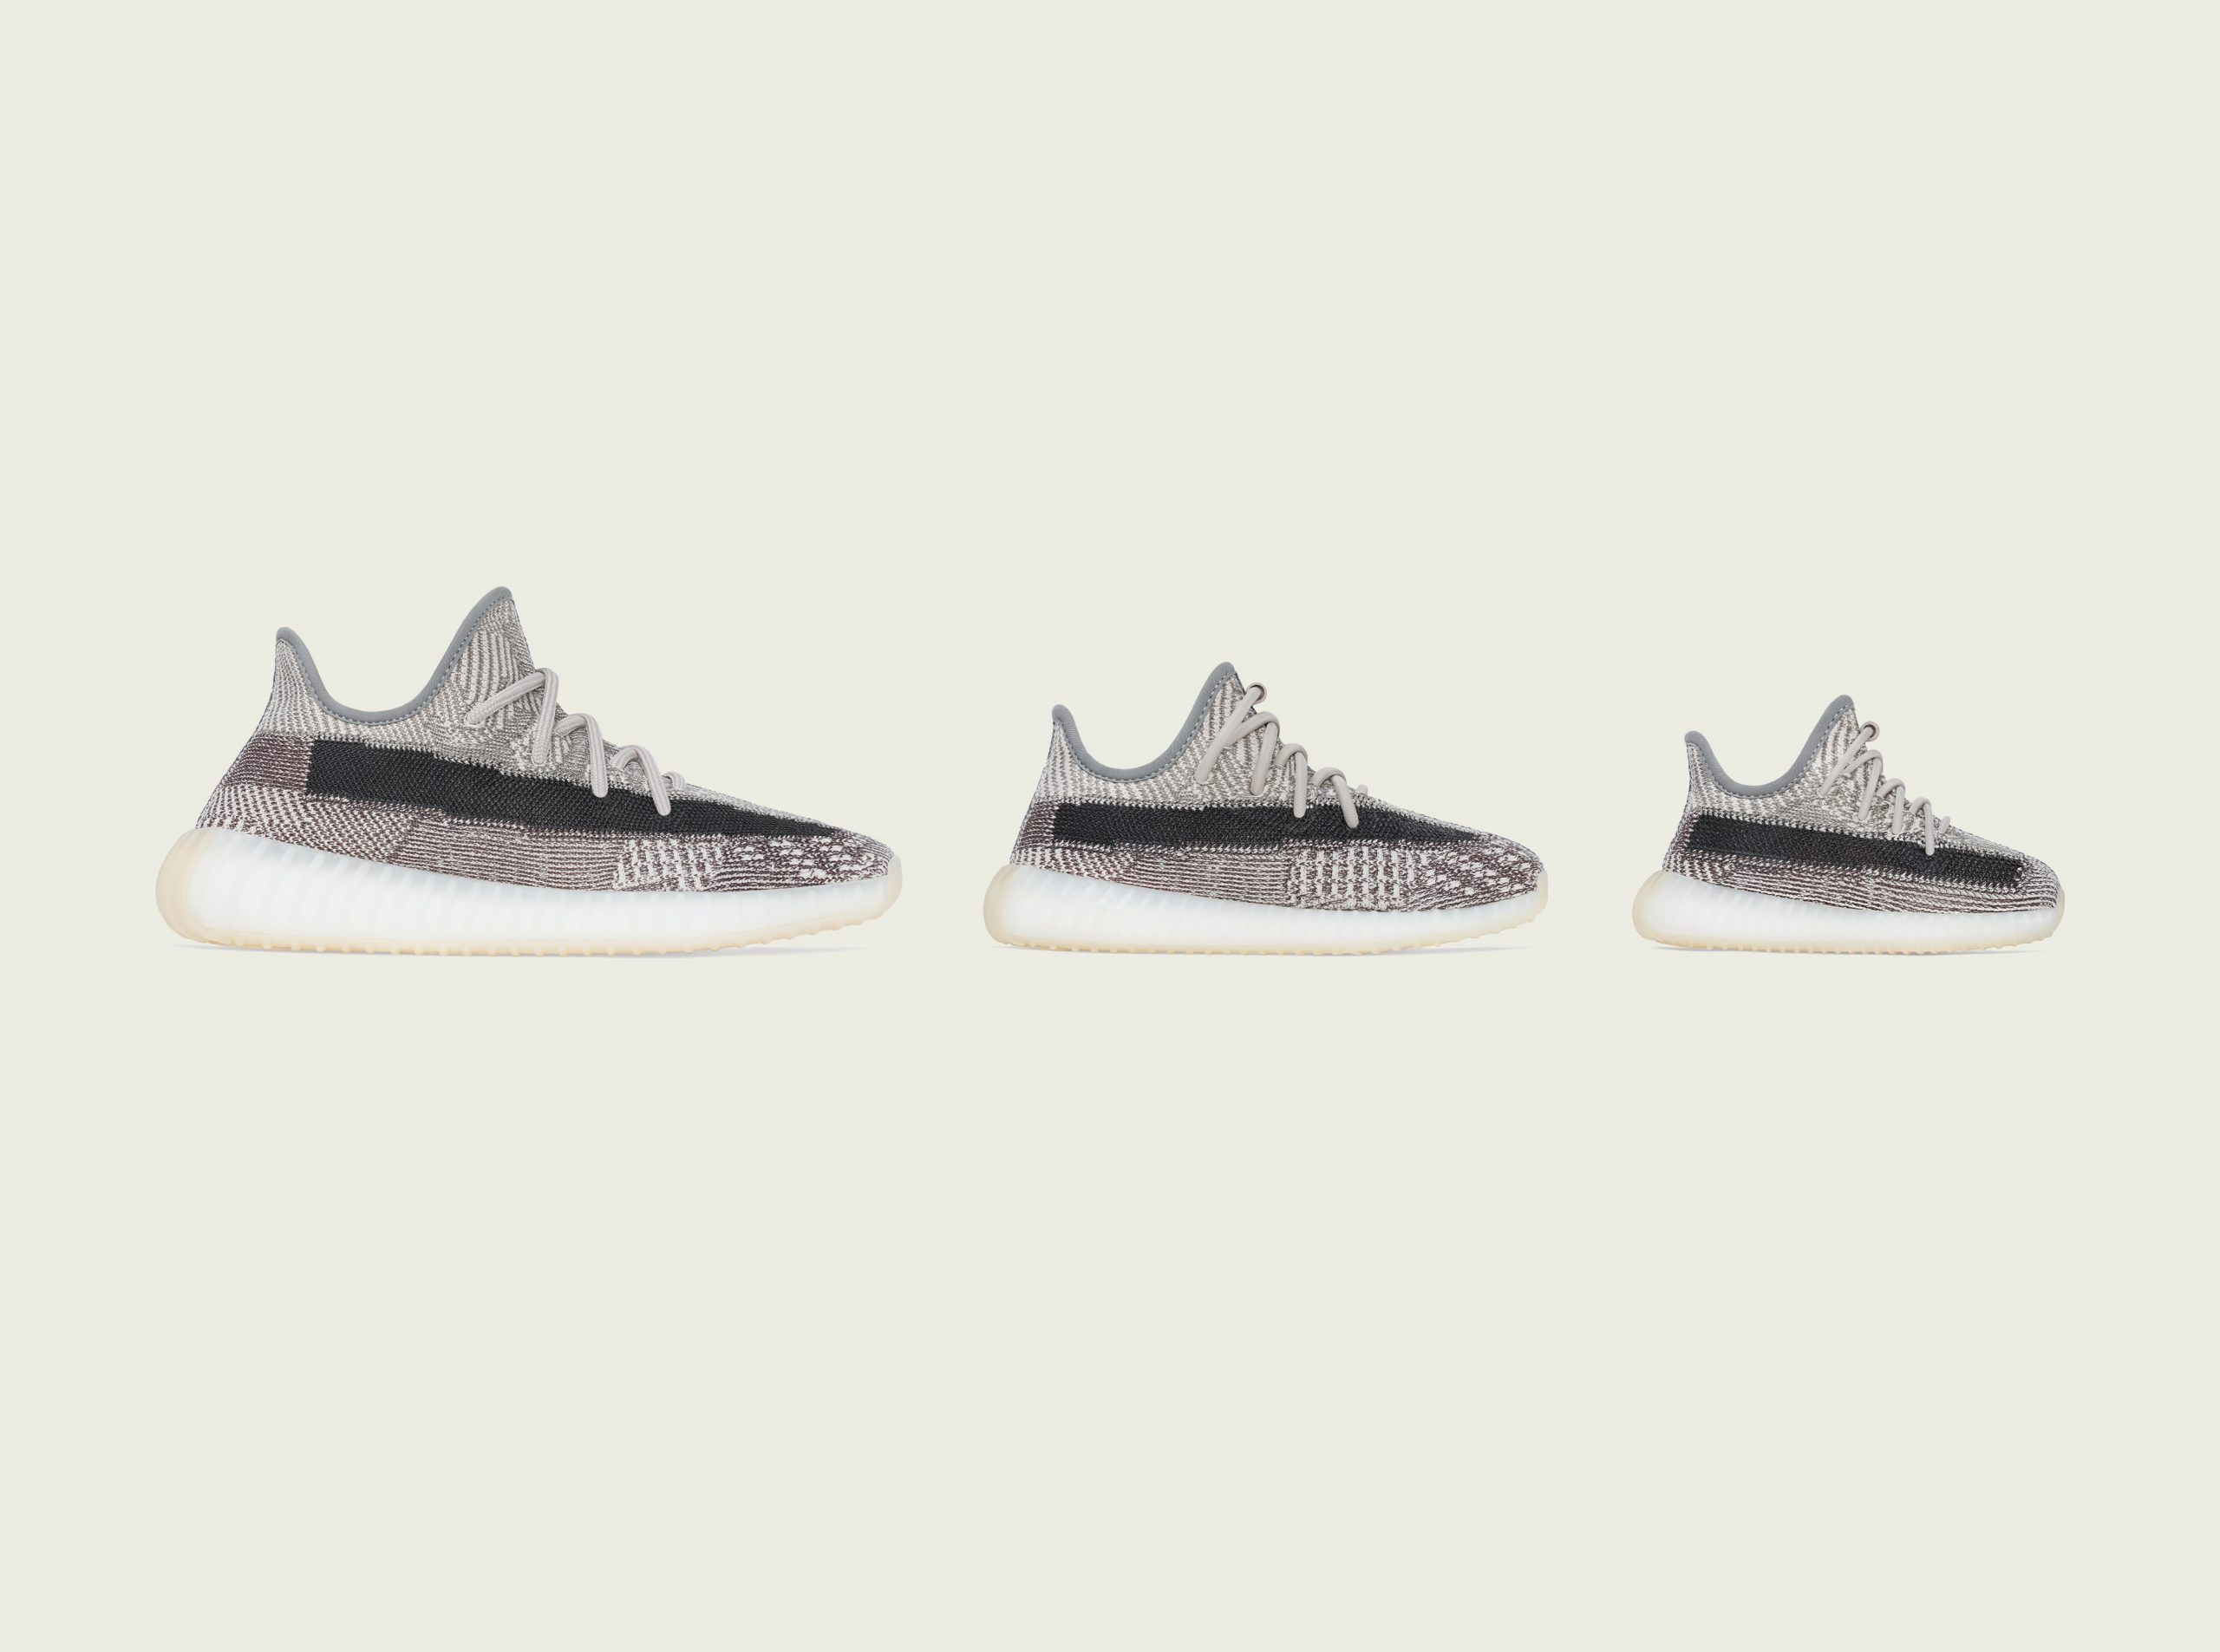 YEEZY_BOOST_350_V2_ZYON_Right_PR300_4000x2976